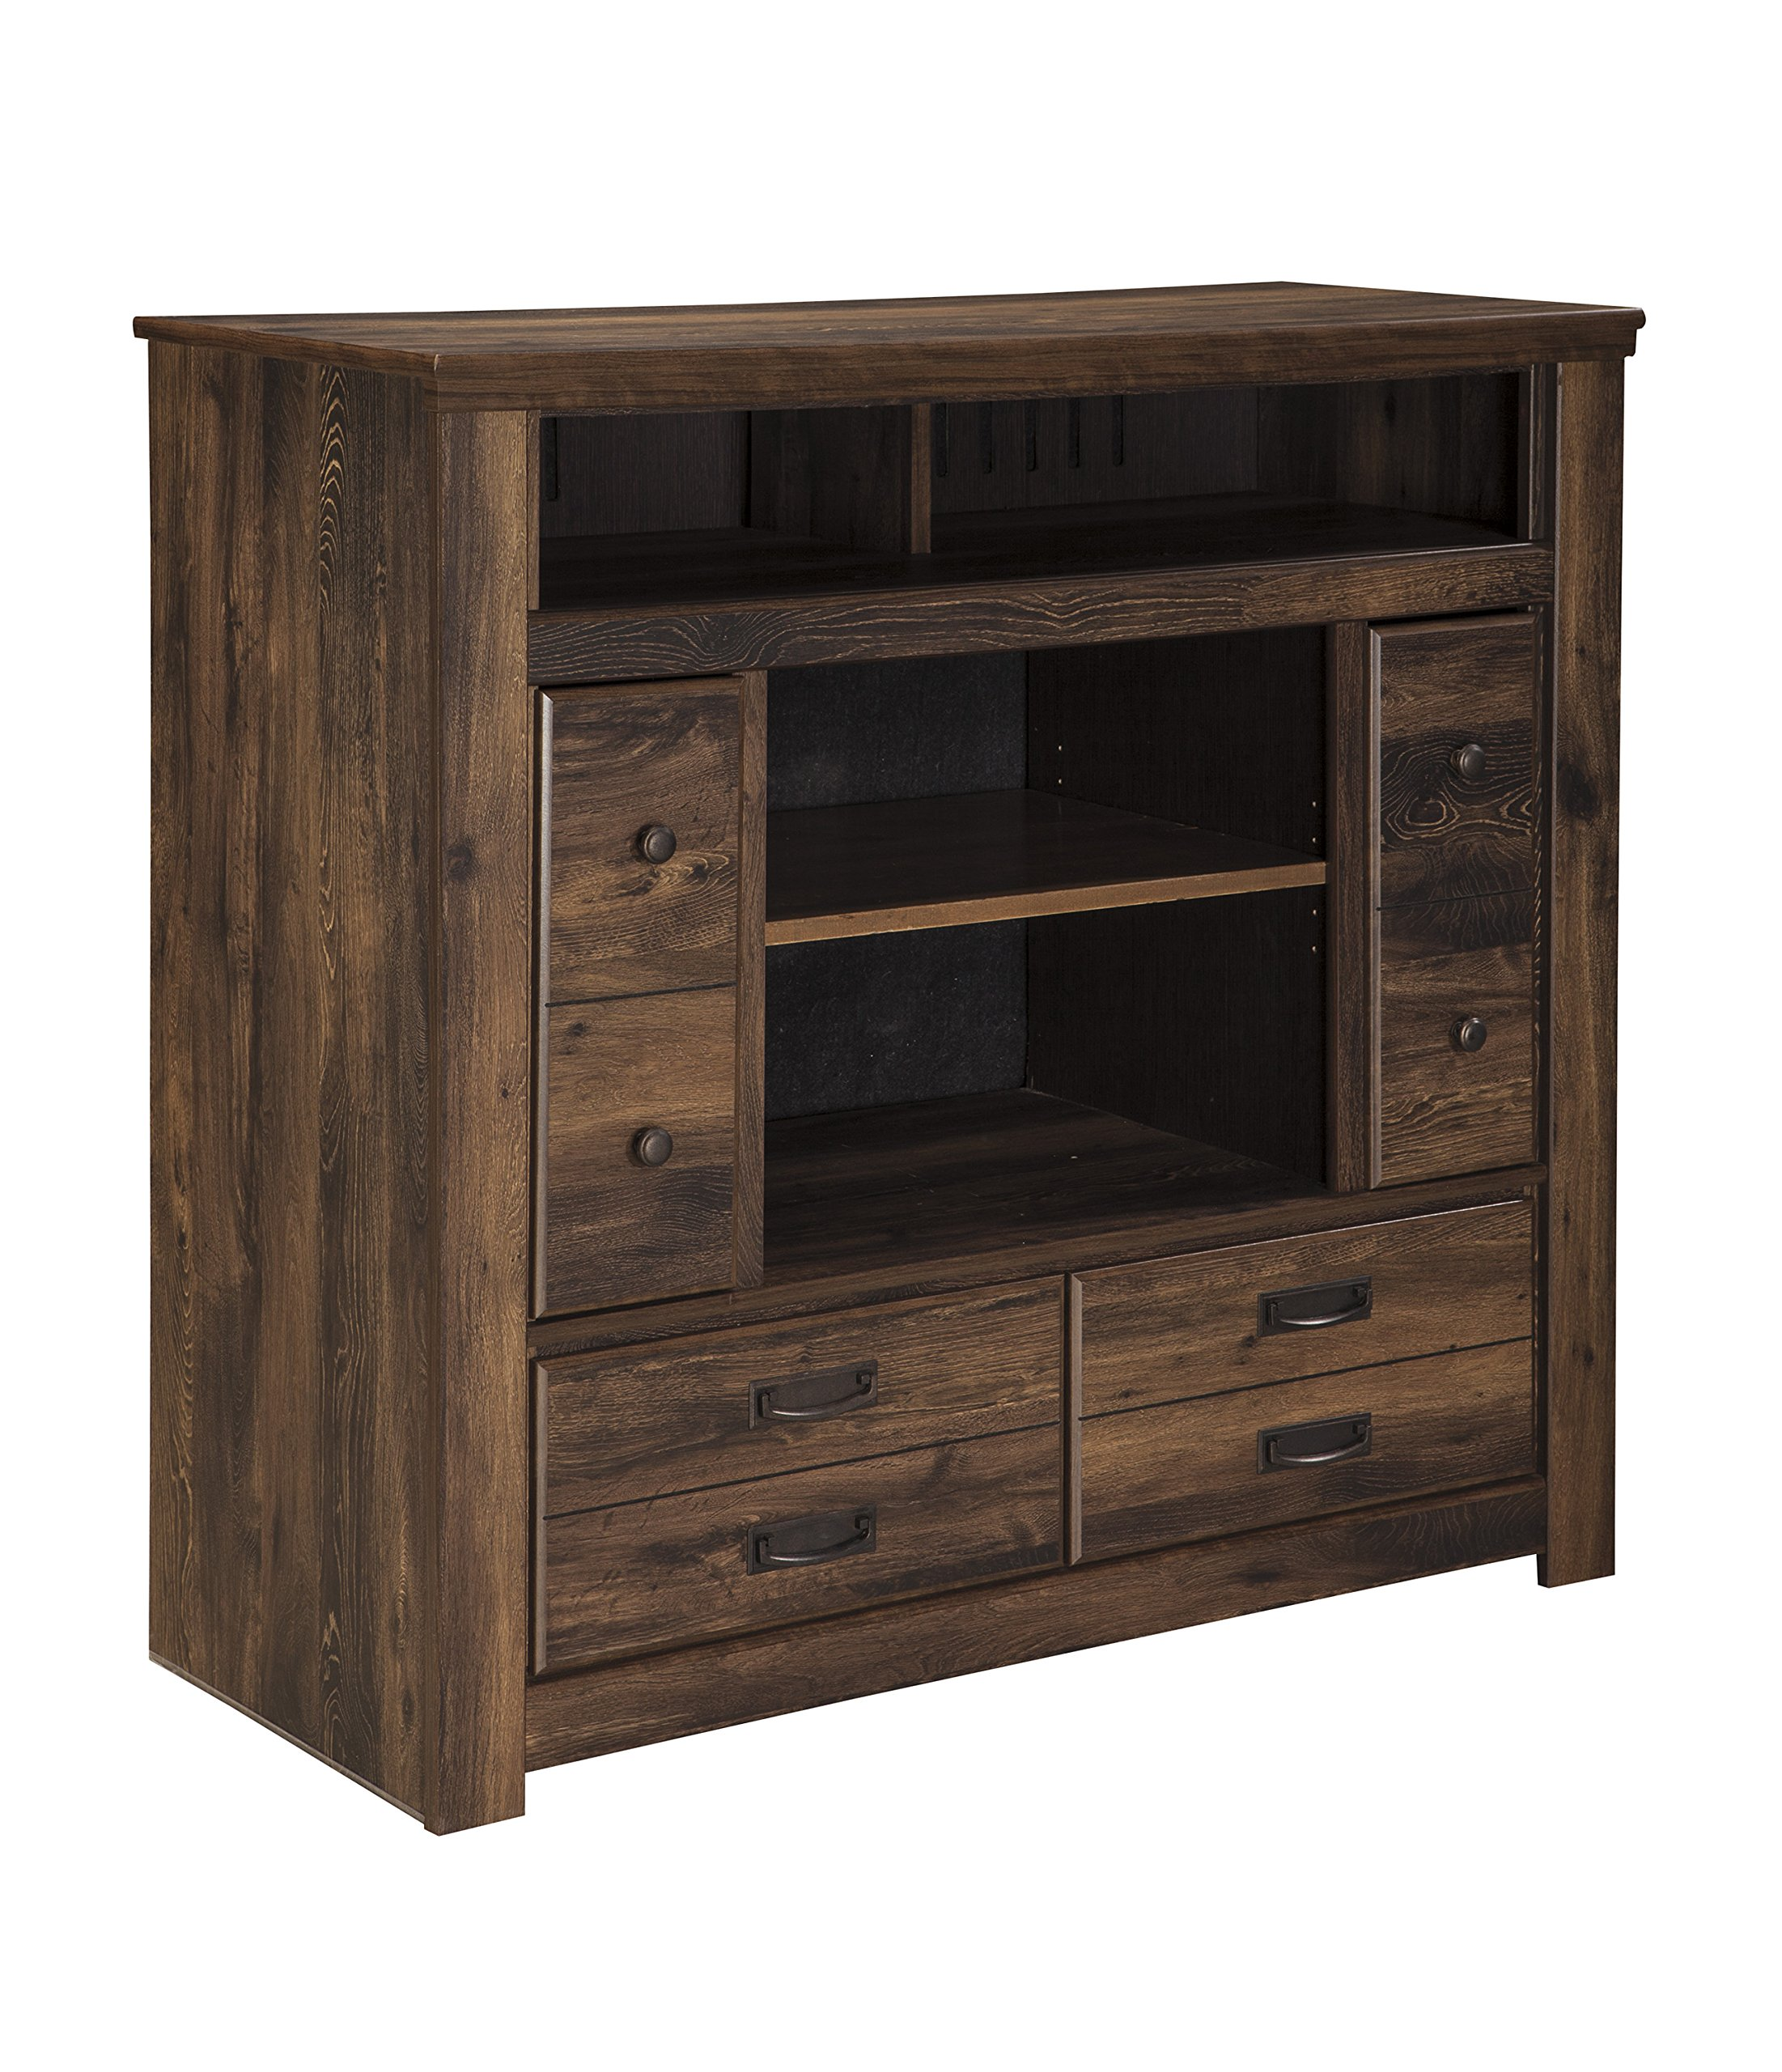 Ashley Furniture Signature Design - Quinden Media Chest - 2 Cabinets and 2 Drawers - Vintage Casual - Dark Brown